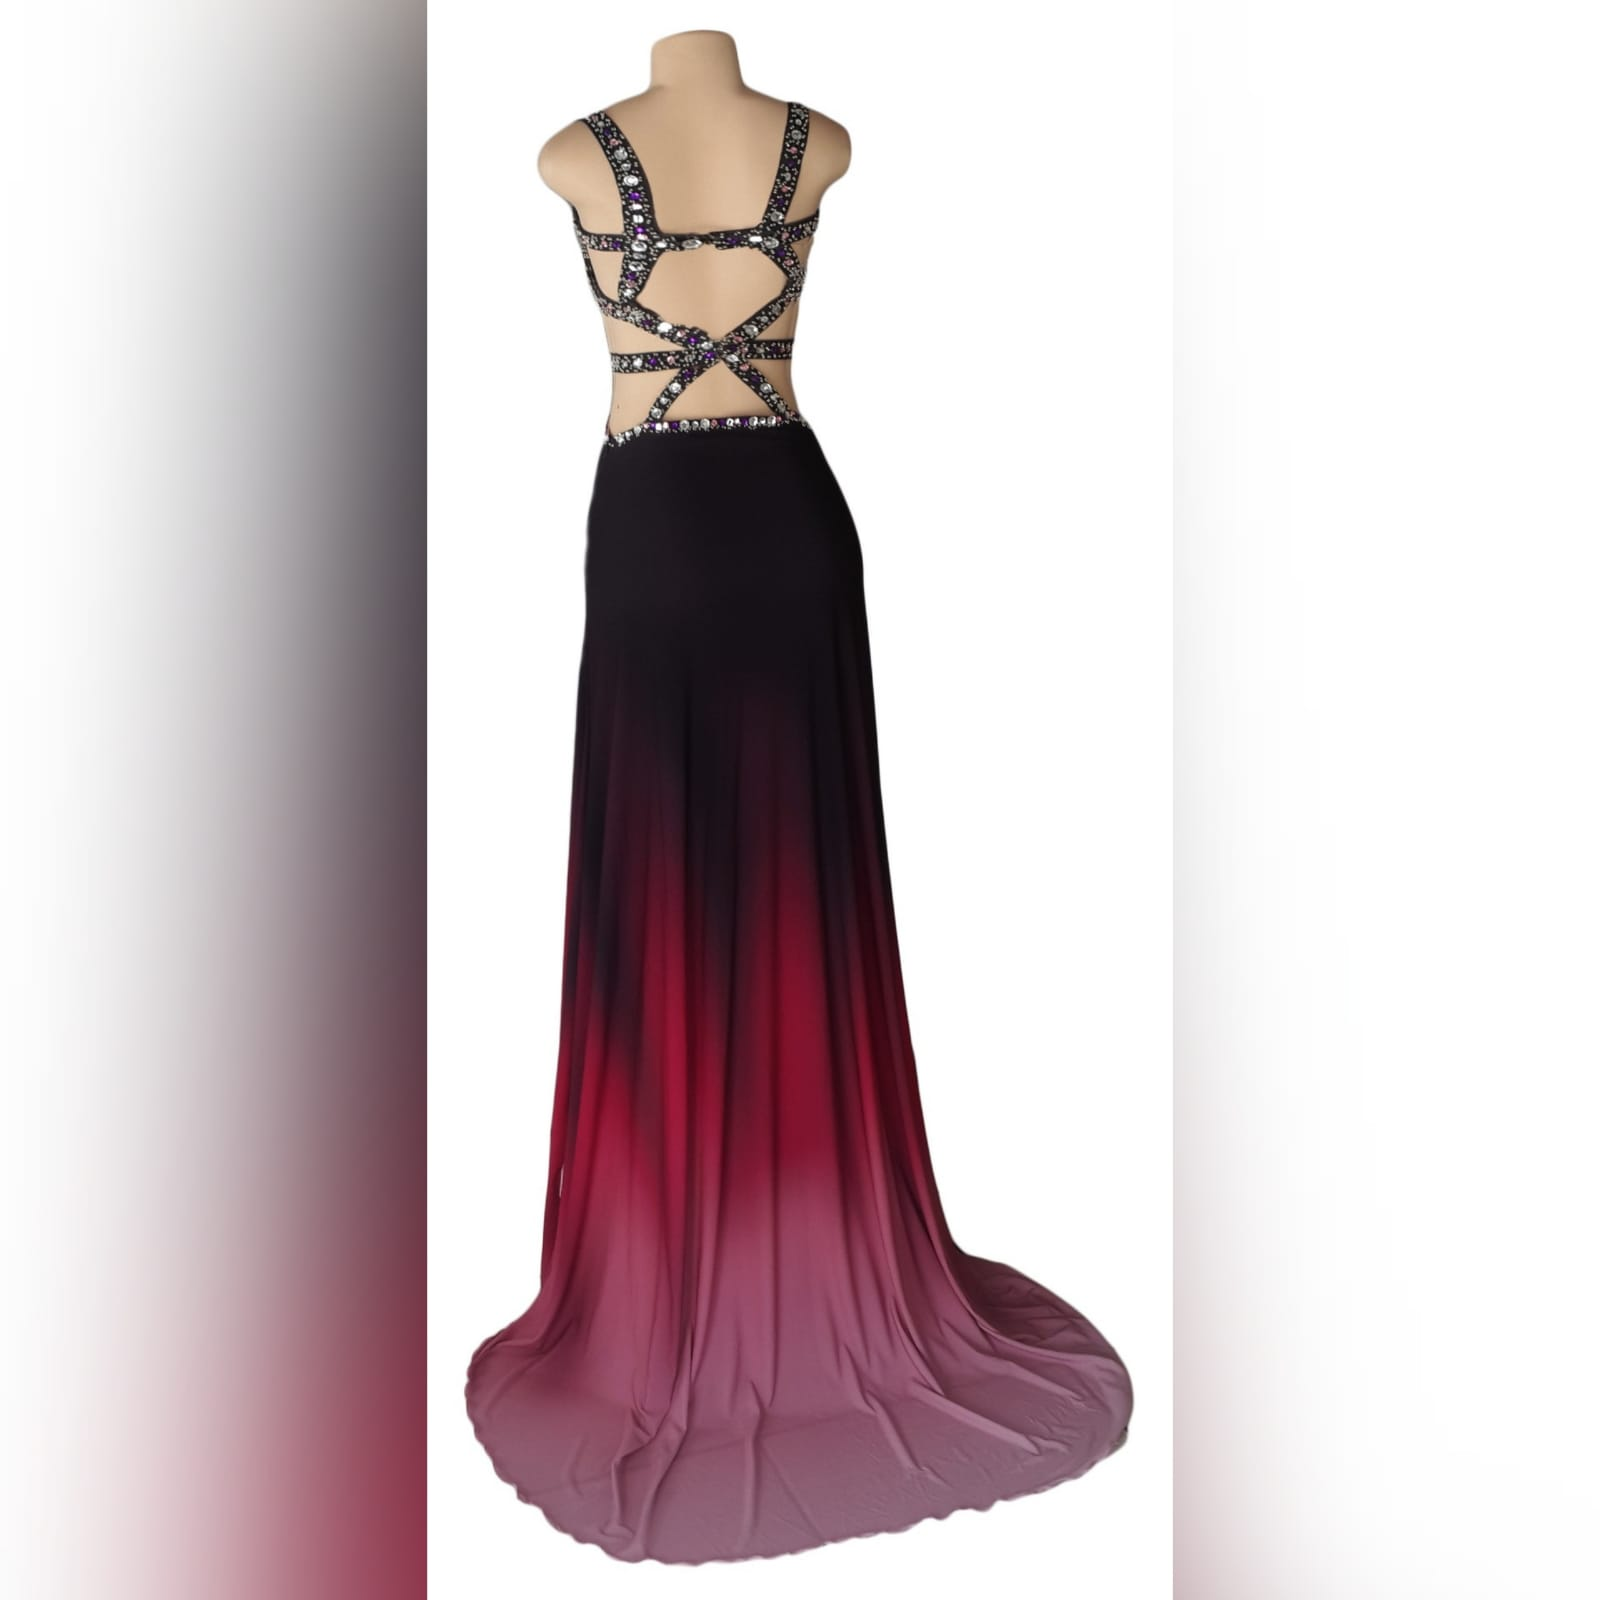 Black pink ombre sexy prom dress 5 black and pink ombre sexy prom dress. With a slit and a train. With tummy and back openings detailed with silver and pink beads.